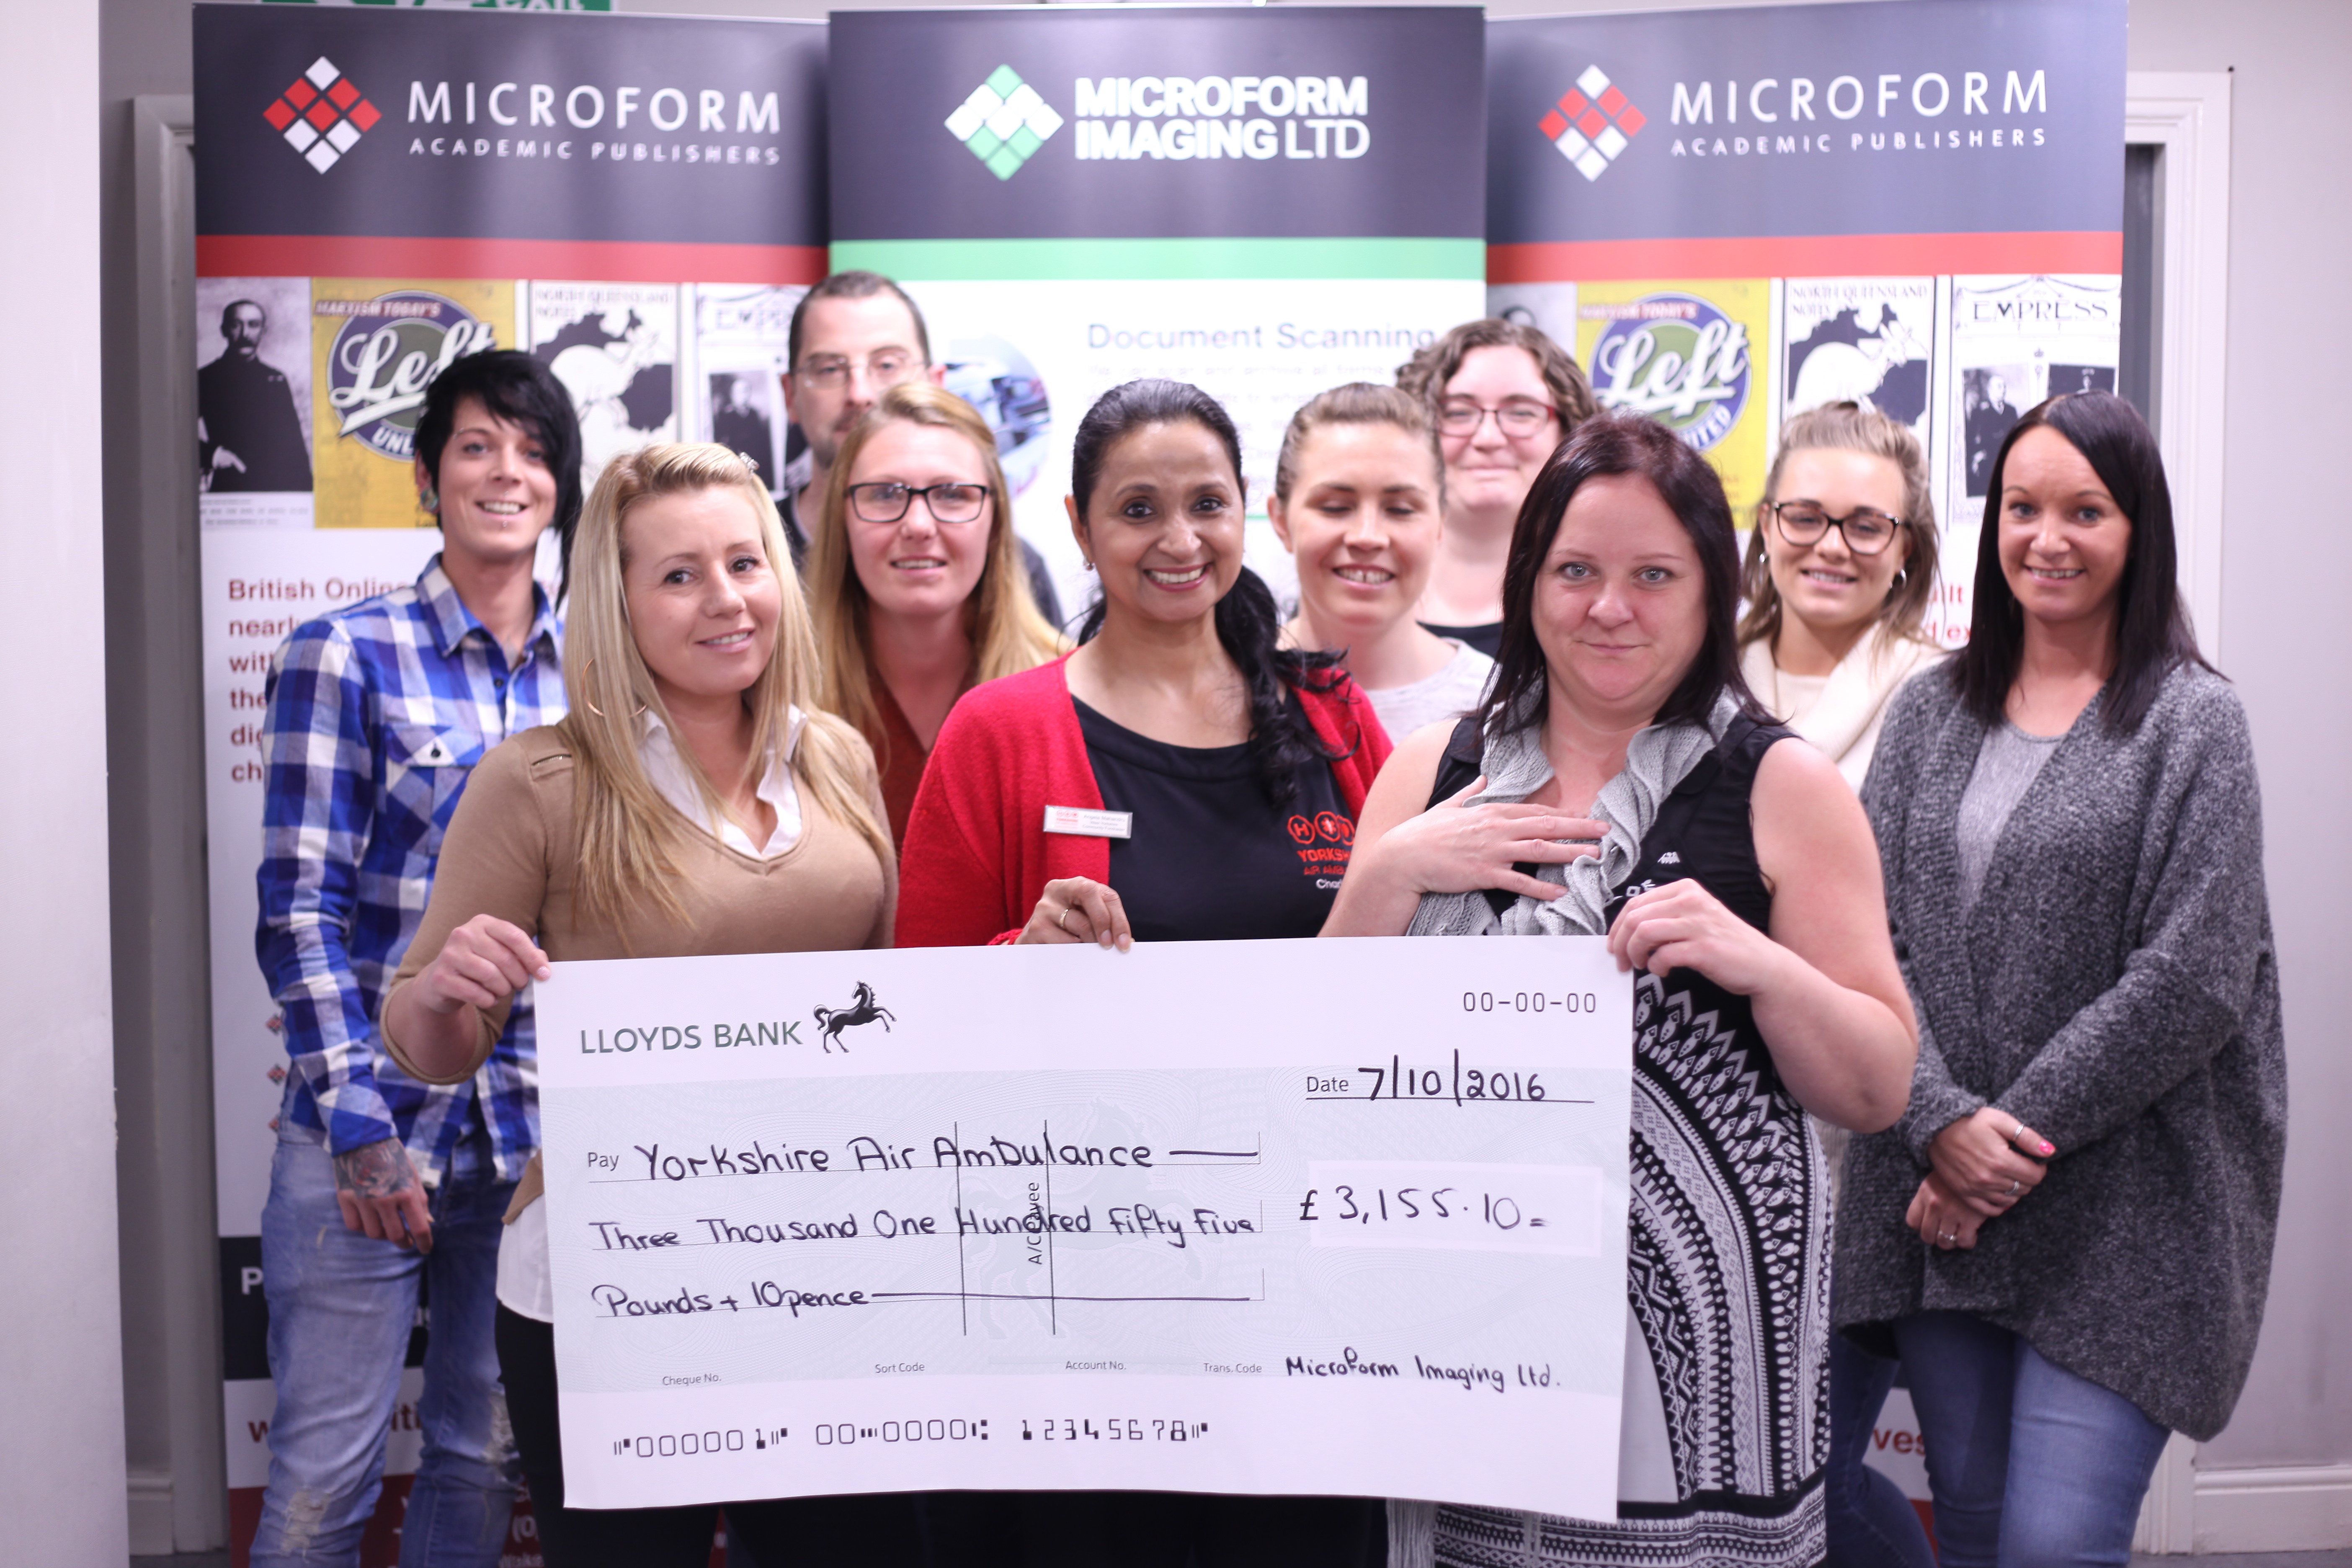 Microform's Charity Fundraisers